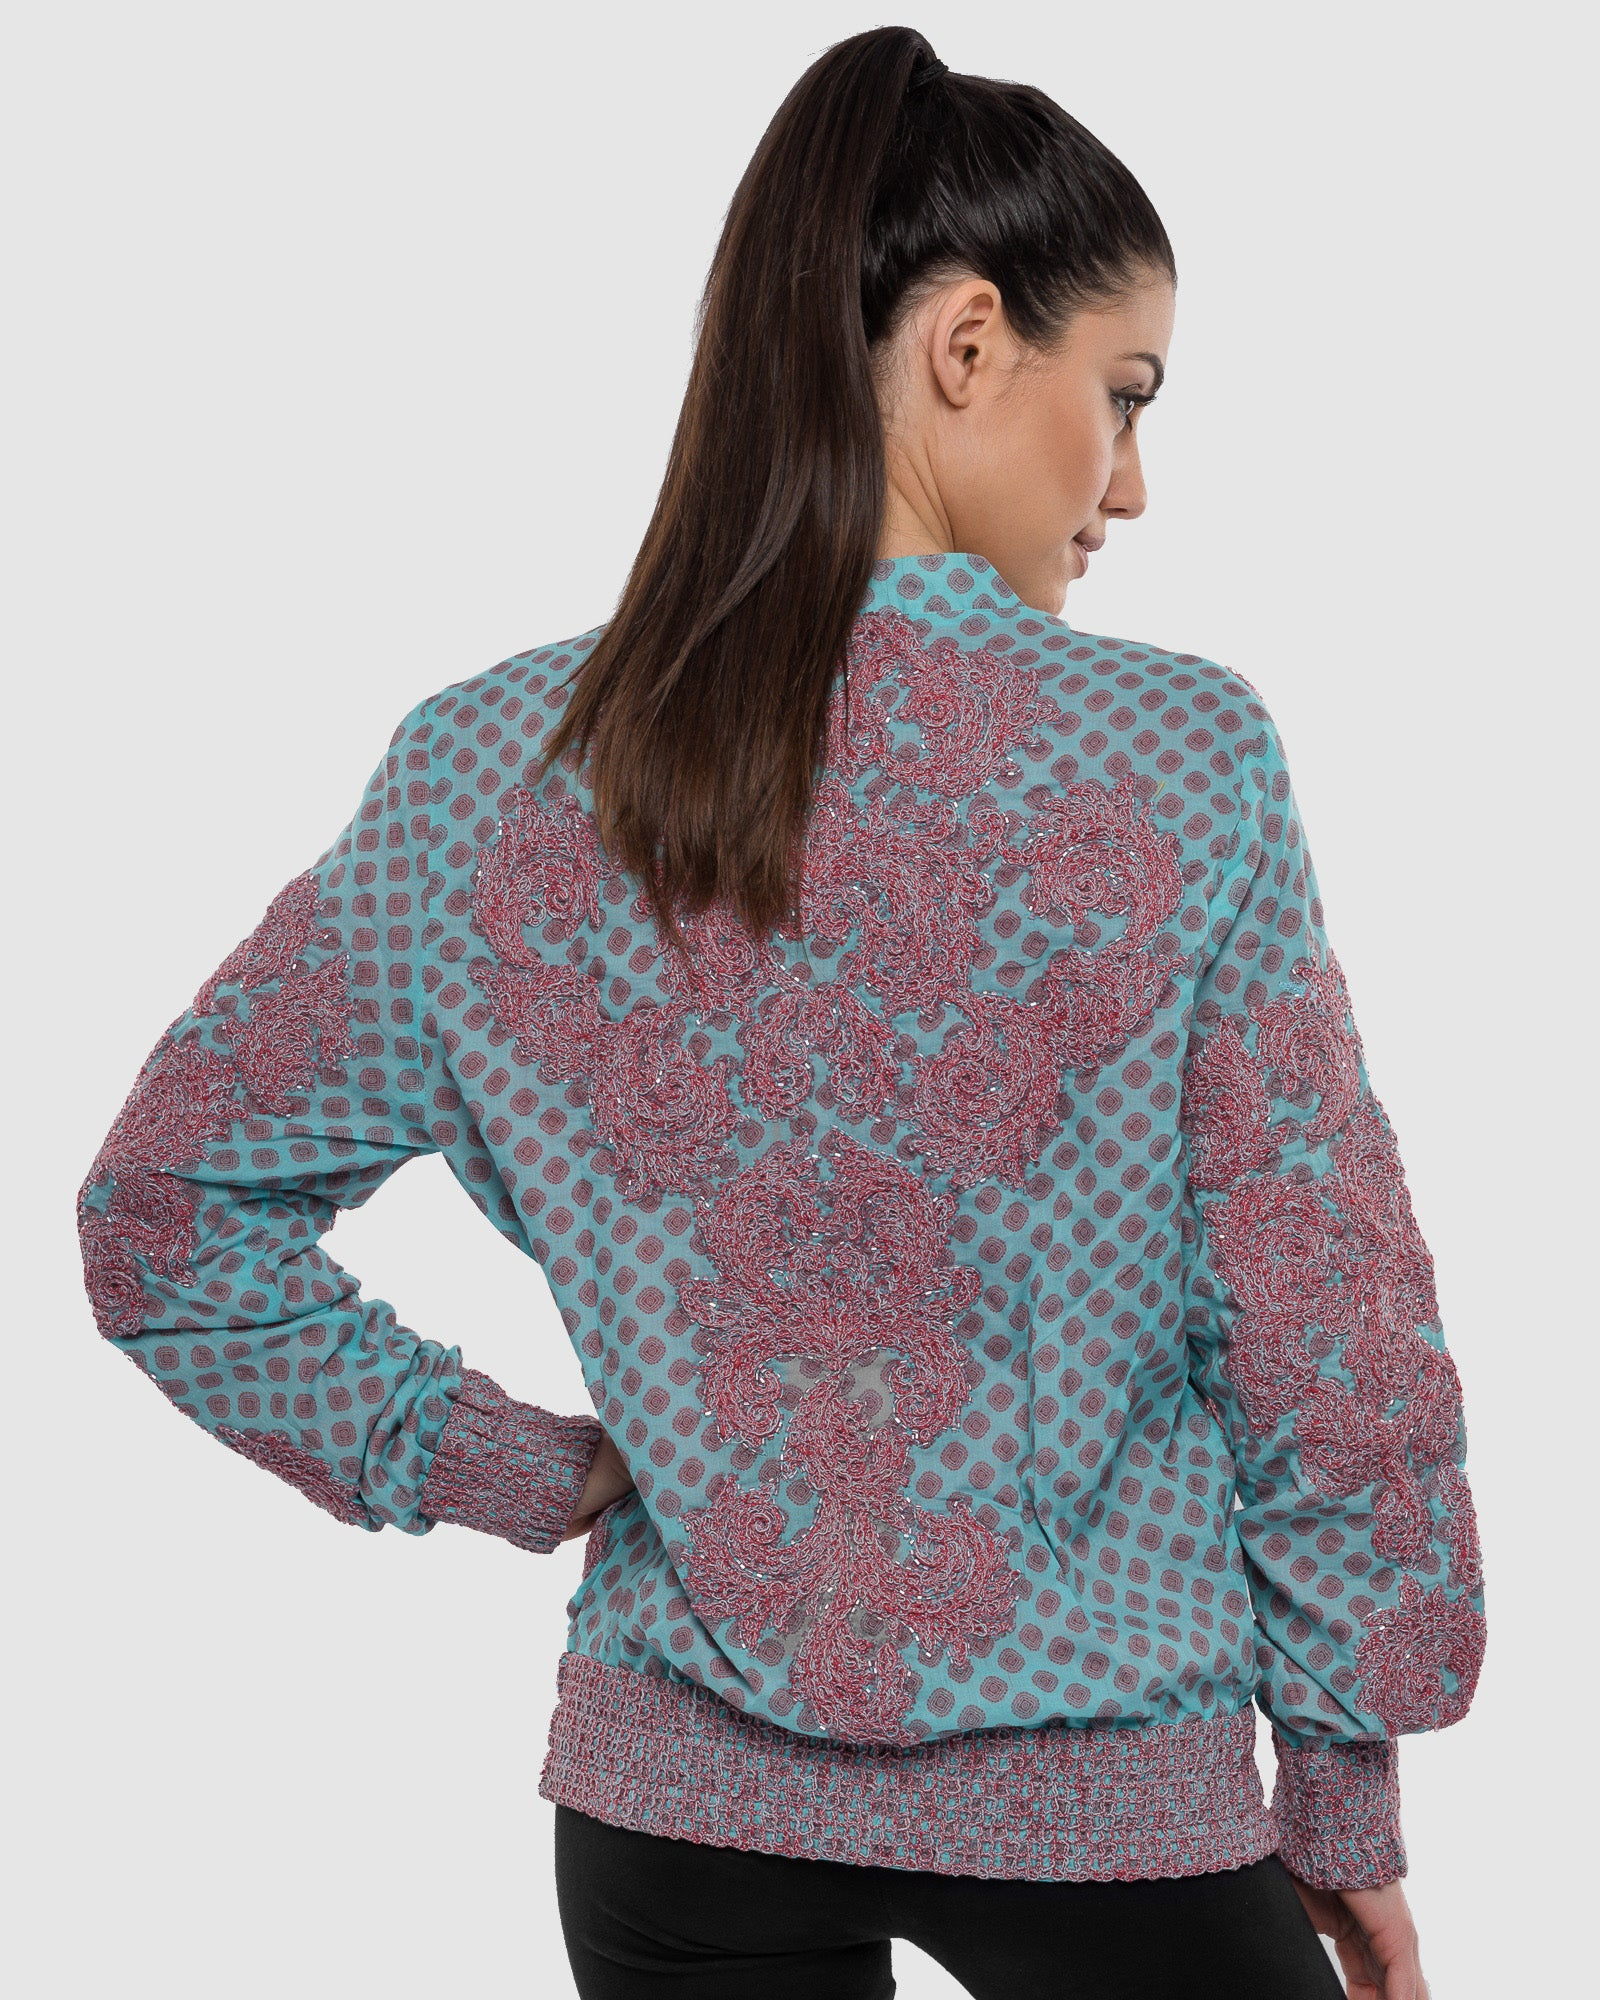 AQUA EMBROIDERED AND BEADED PRINTED BOMBER JACKET